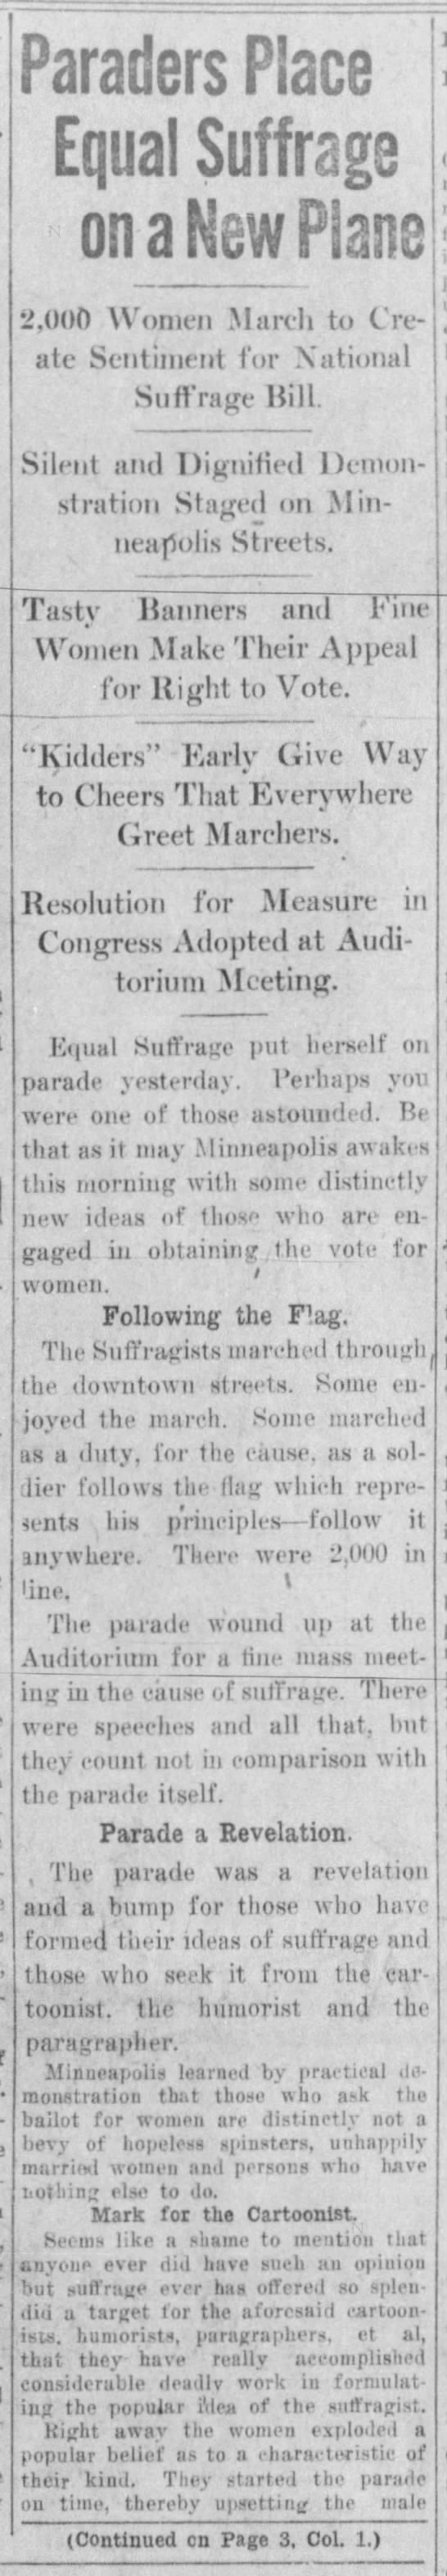 Paraders place equal suffrage on a new plane, pg 1 -